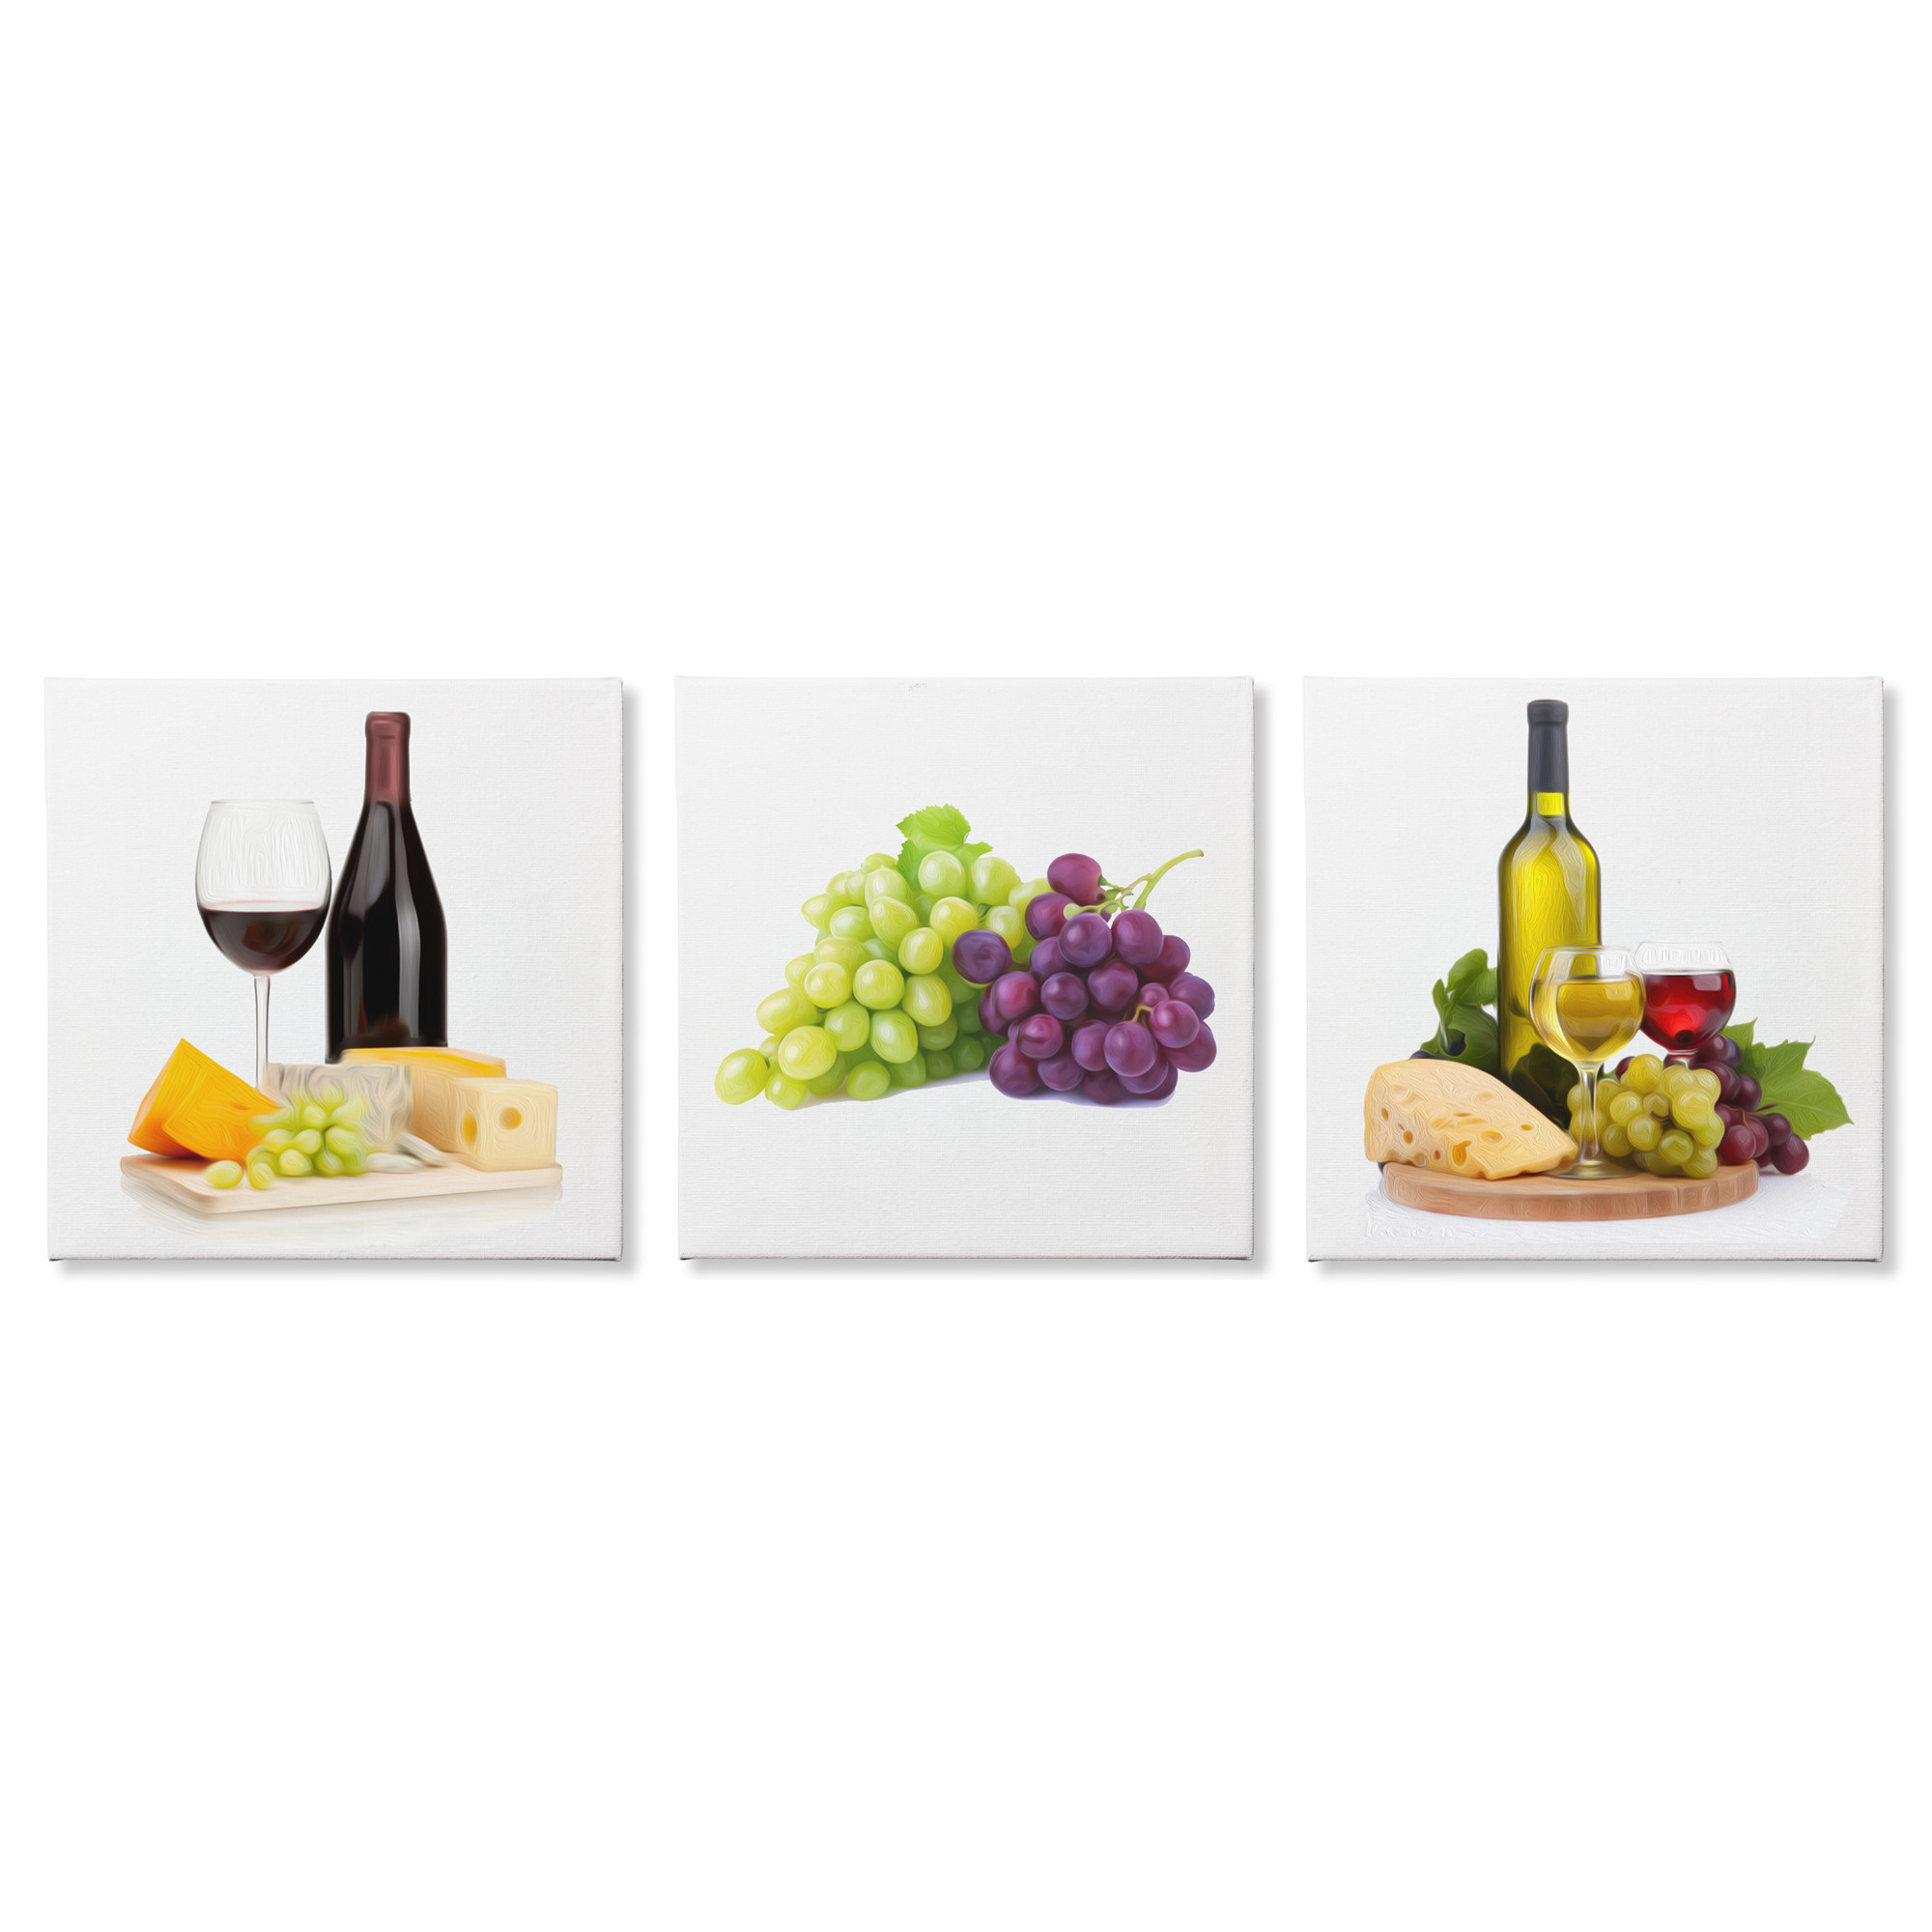 Modern Kitchen Art 'Wine and Cheese' Food Painting - Brushstroke Giclee Print on Canvas - Grapes, Red Wine, White Wine, Wine & Cheese